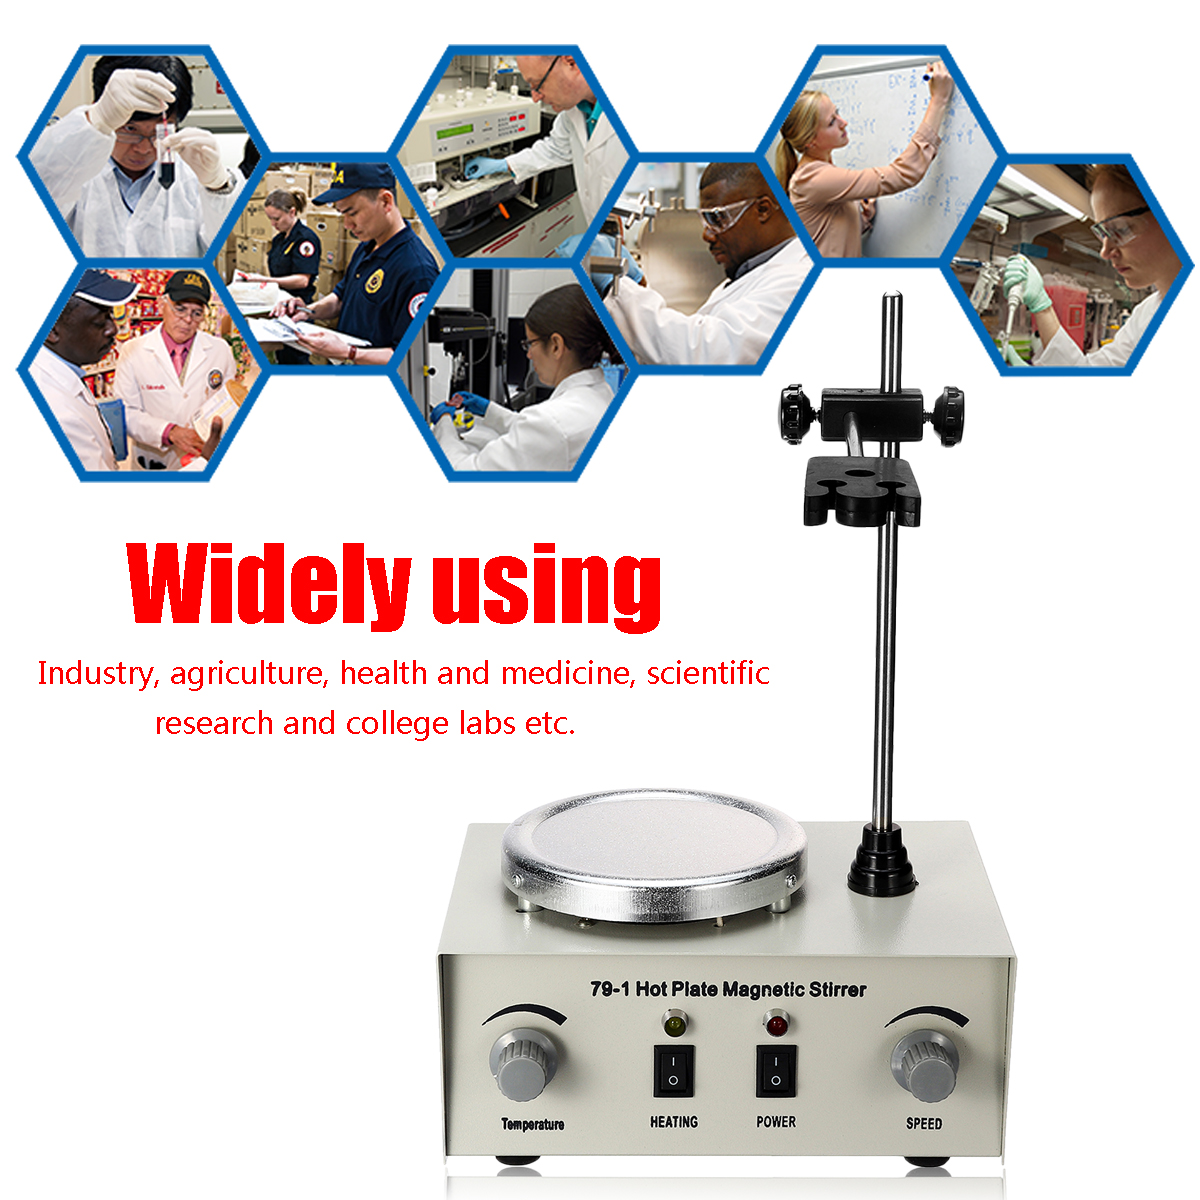 US/AU/EU 79-1 110/220V 250W 1000ml Hot Plate Magnetic Stirrer Lab Heating Dual Control Mixer No Noise/Vibration Fuses Protection vibration of orthotropic rectangular plate